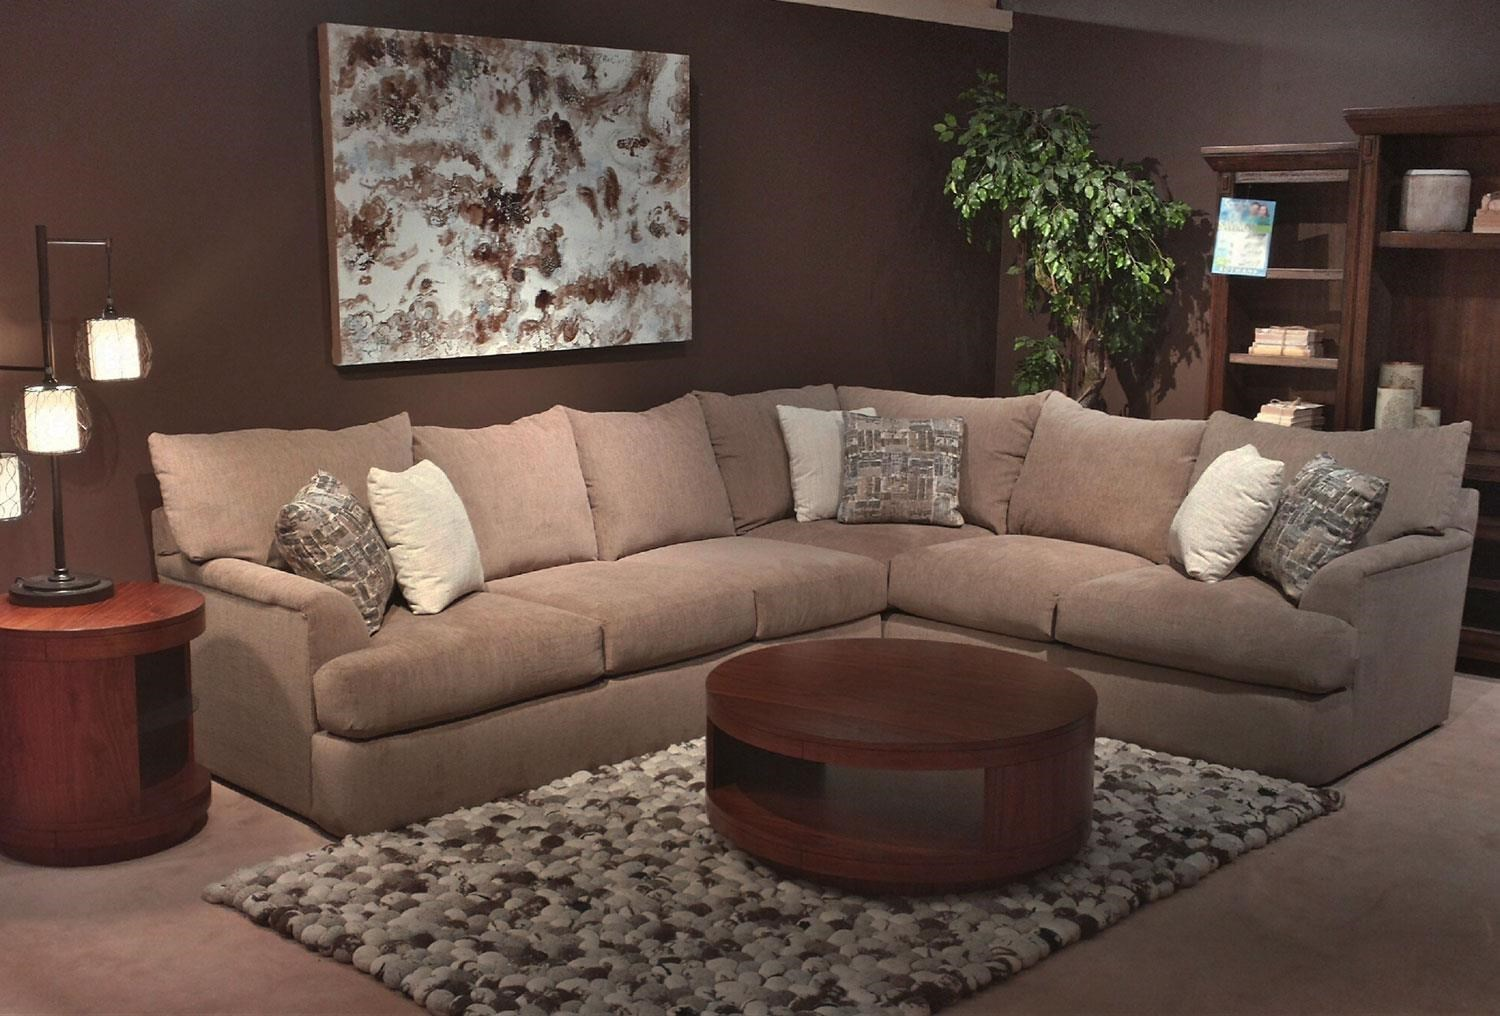 shambala contemporary l shaped sectional sofa rotmans sectional rh rotmans com